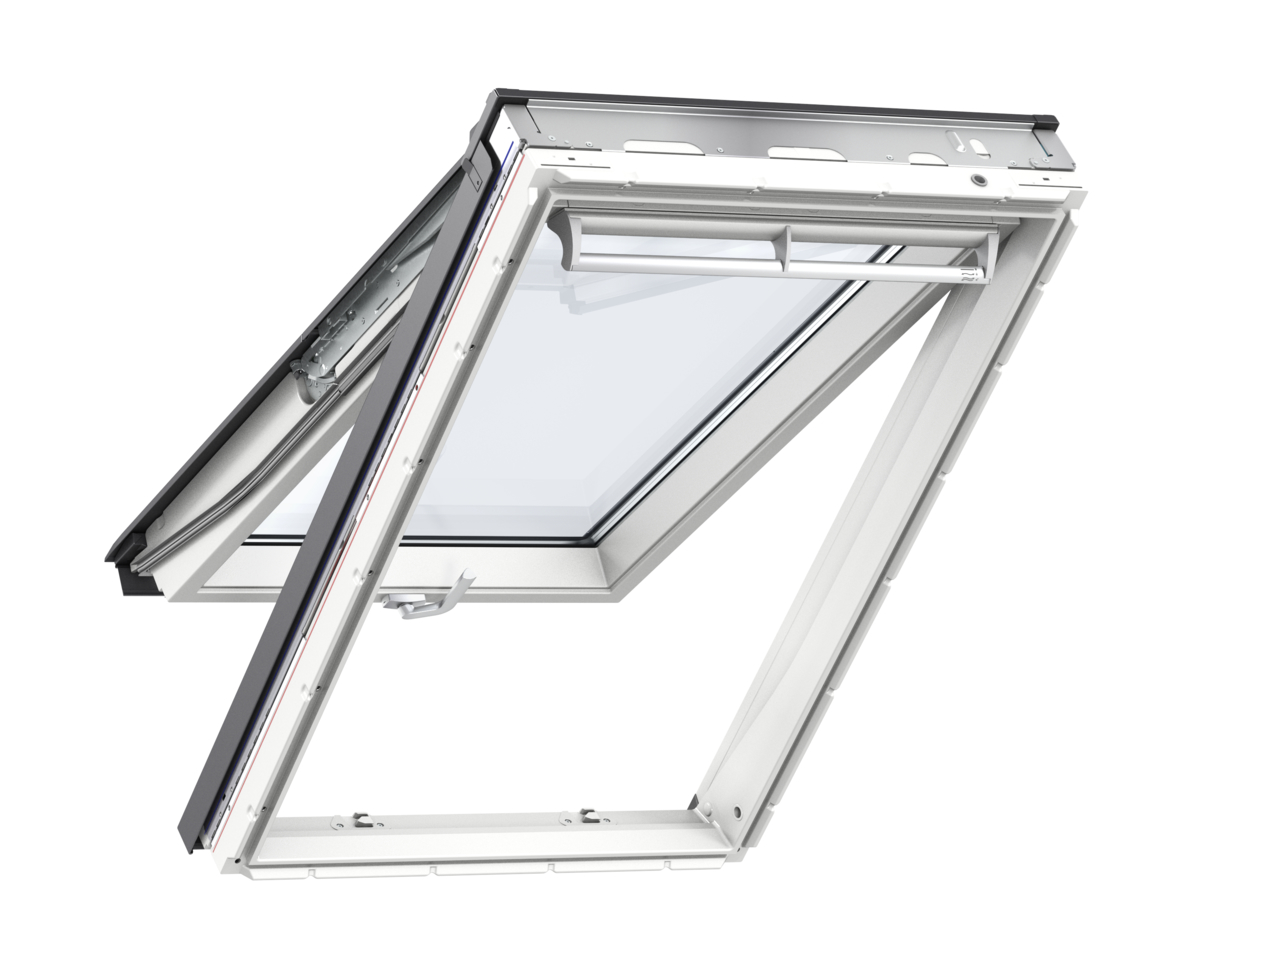 Velux GPU UK08 1340 x 1400mm Top Hung 34Pane Roof Window - White Polyurethane